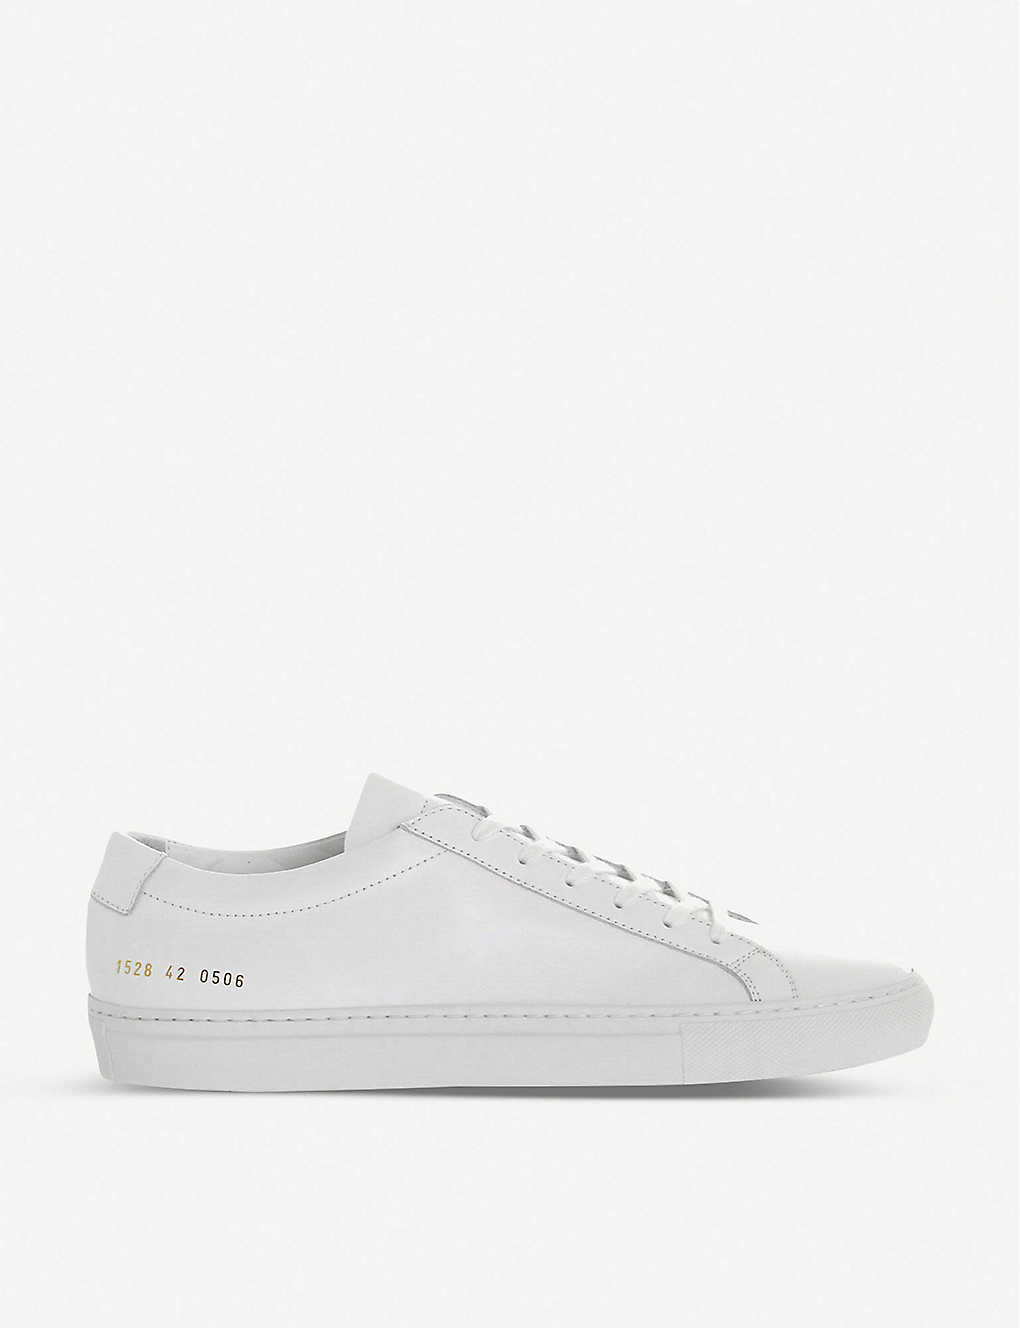 caedc30ef9875a COMMON PROJECTS - Achilles leather low-top trainers | Selfridges.com